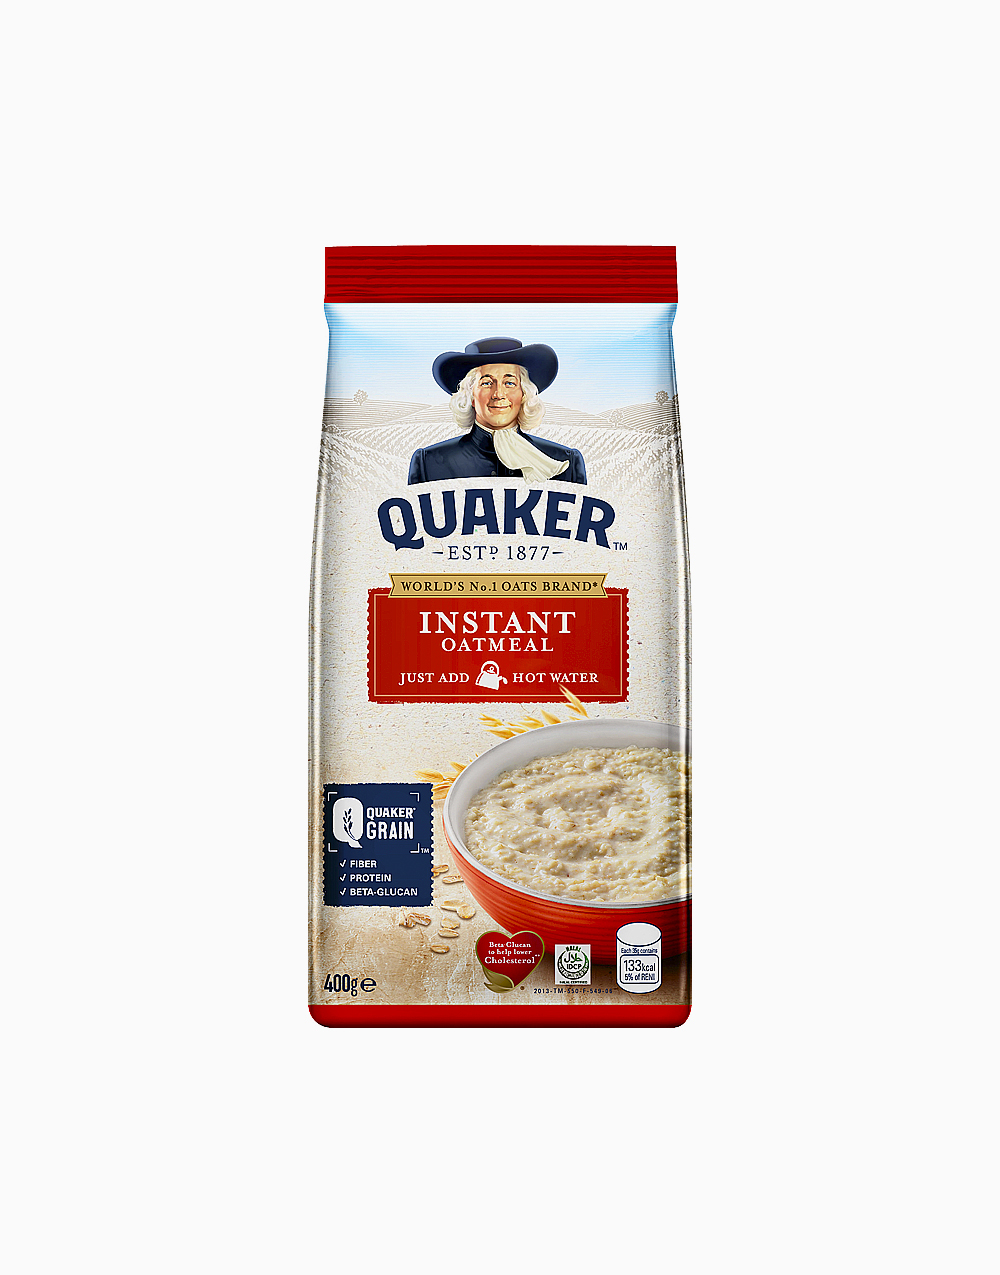 Instant Oatmeal (400g) by Quaker